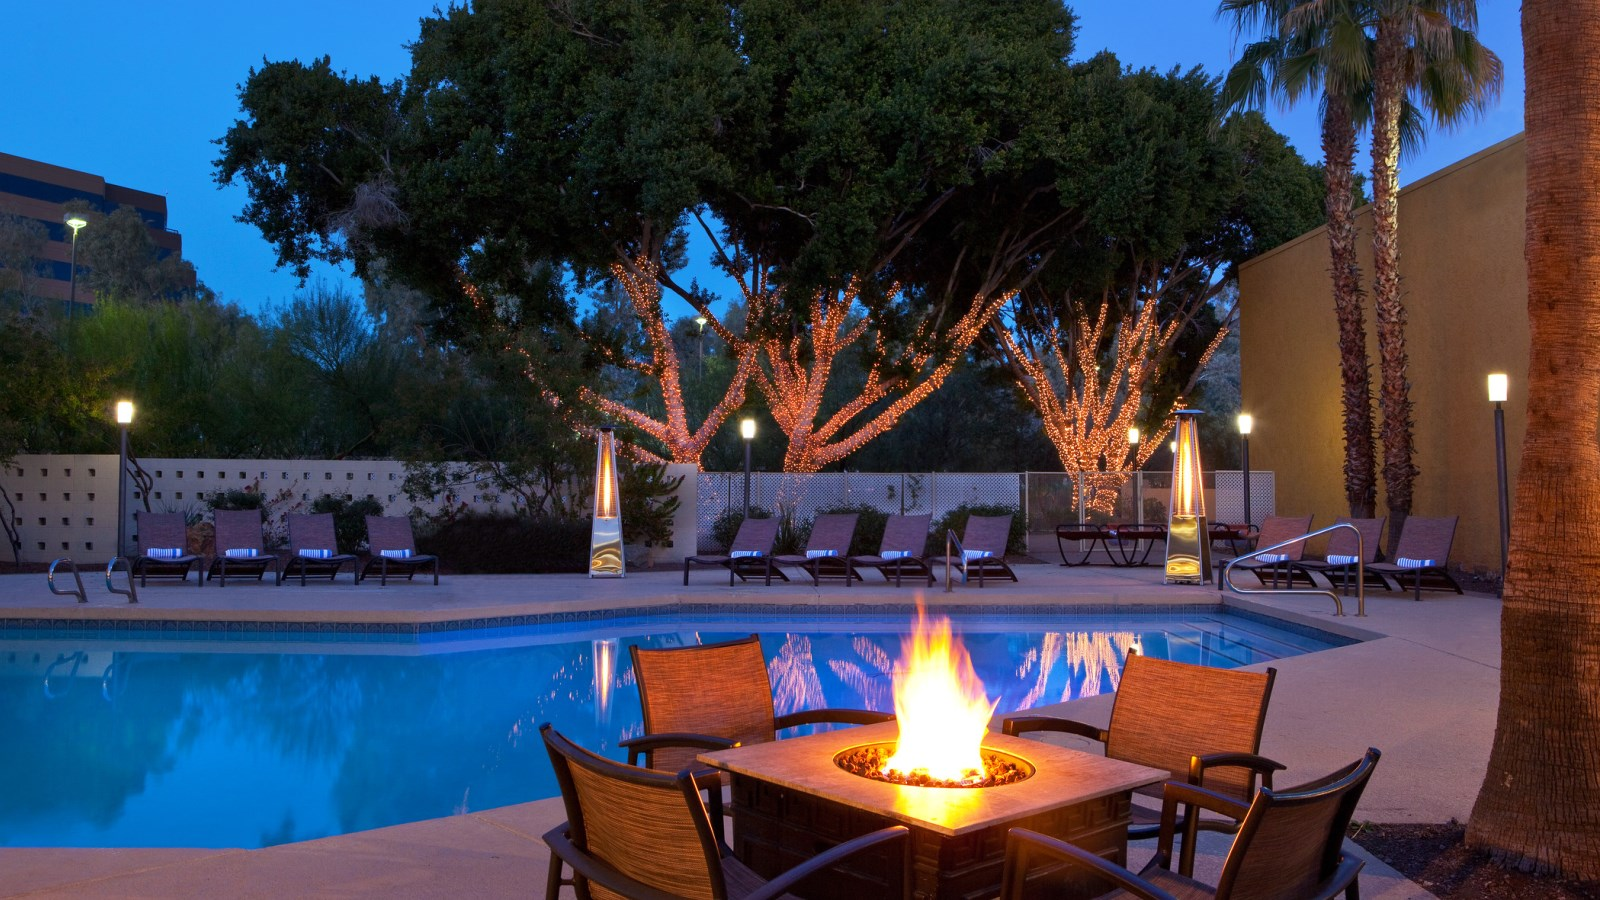 Event Venues in Phoenix  - Pool patio